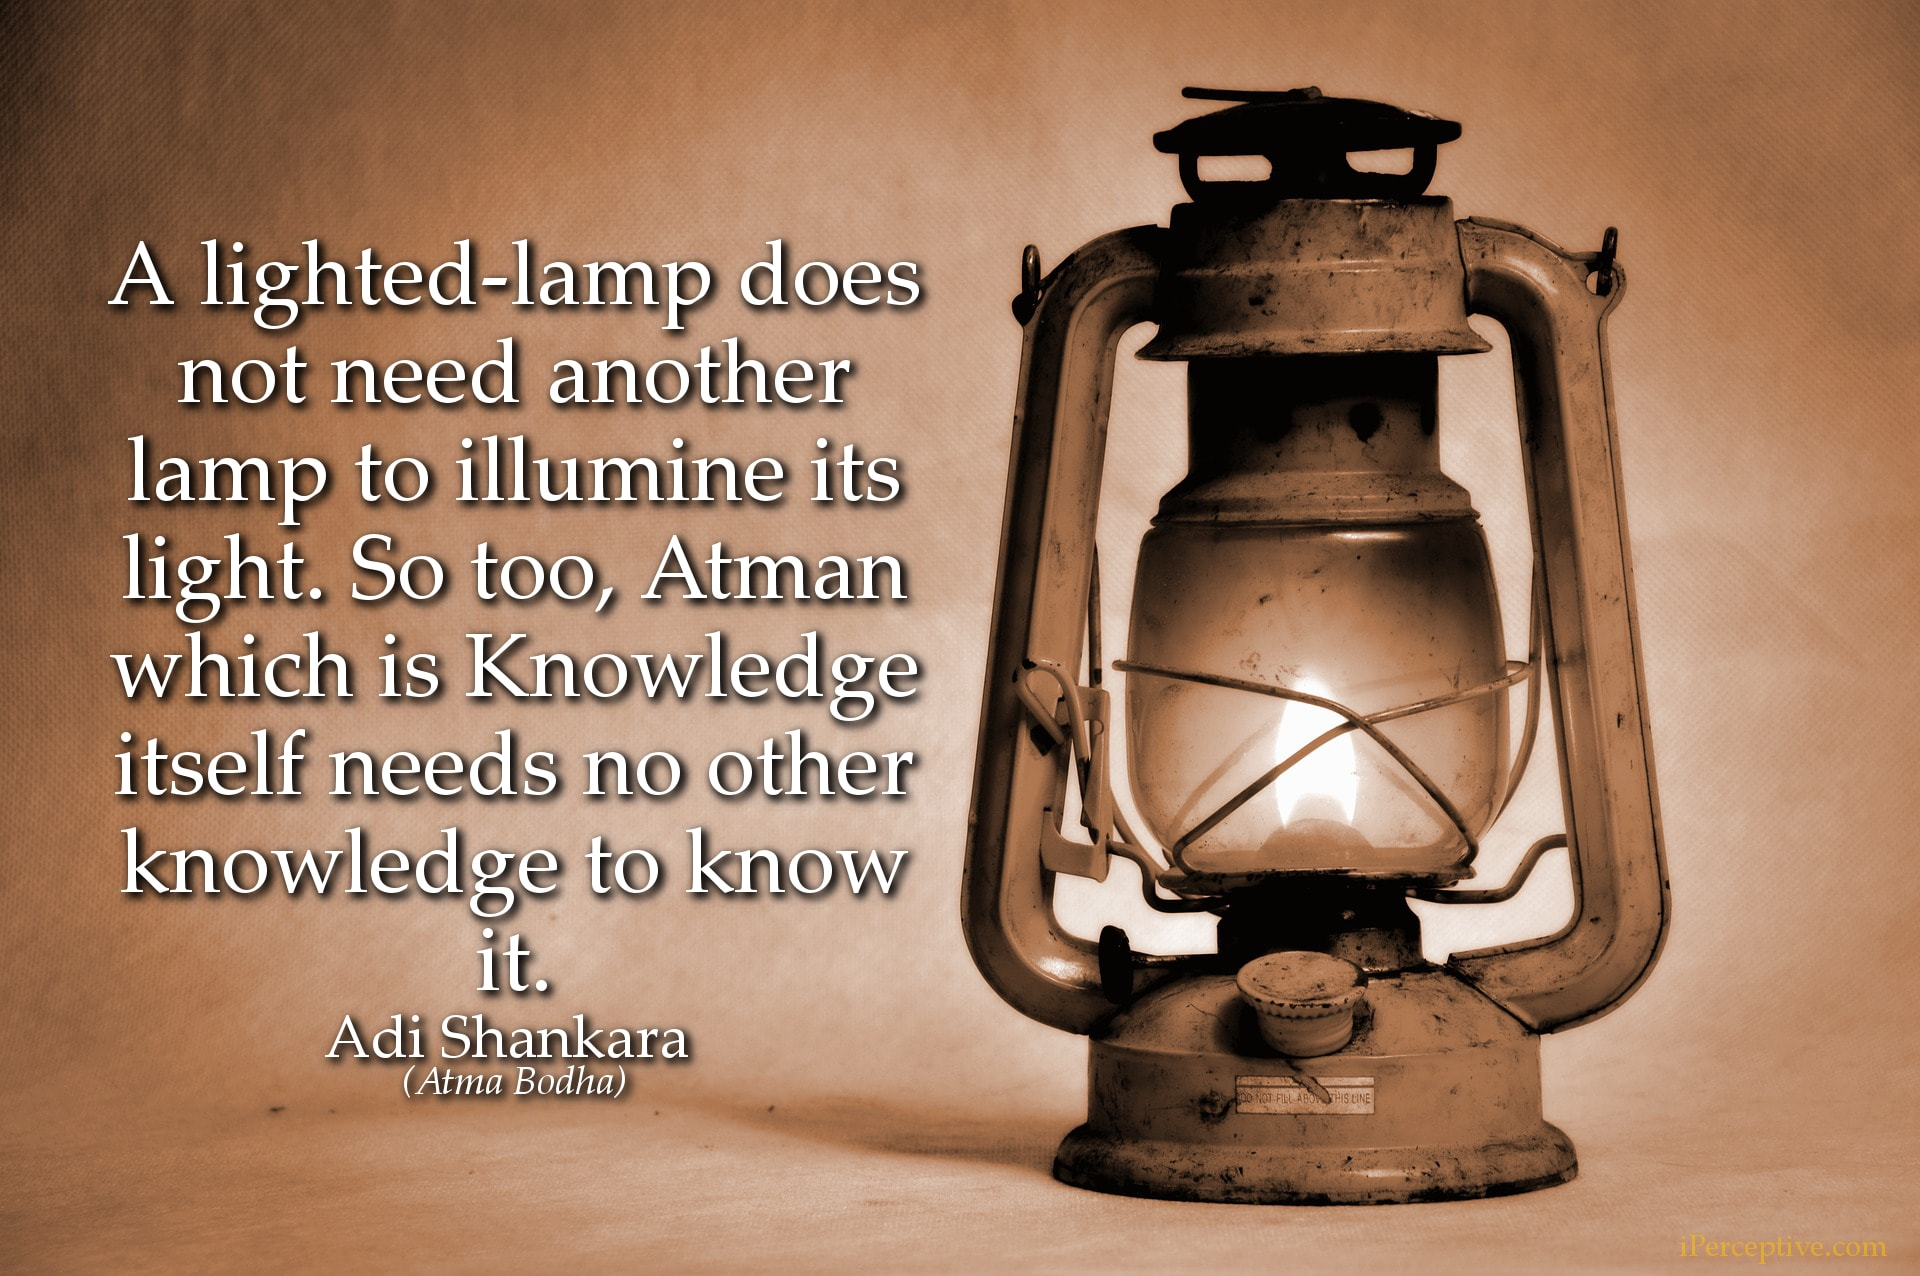 Adi Shankara Quote: A lighted-lamp does not need another lamp to illumine its light. So too, Atman which....